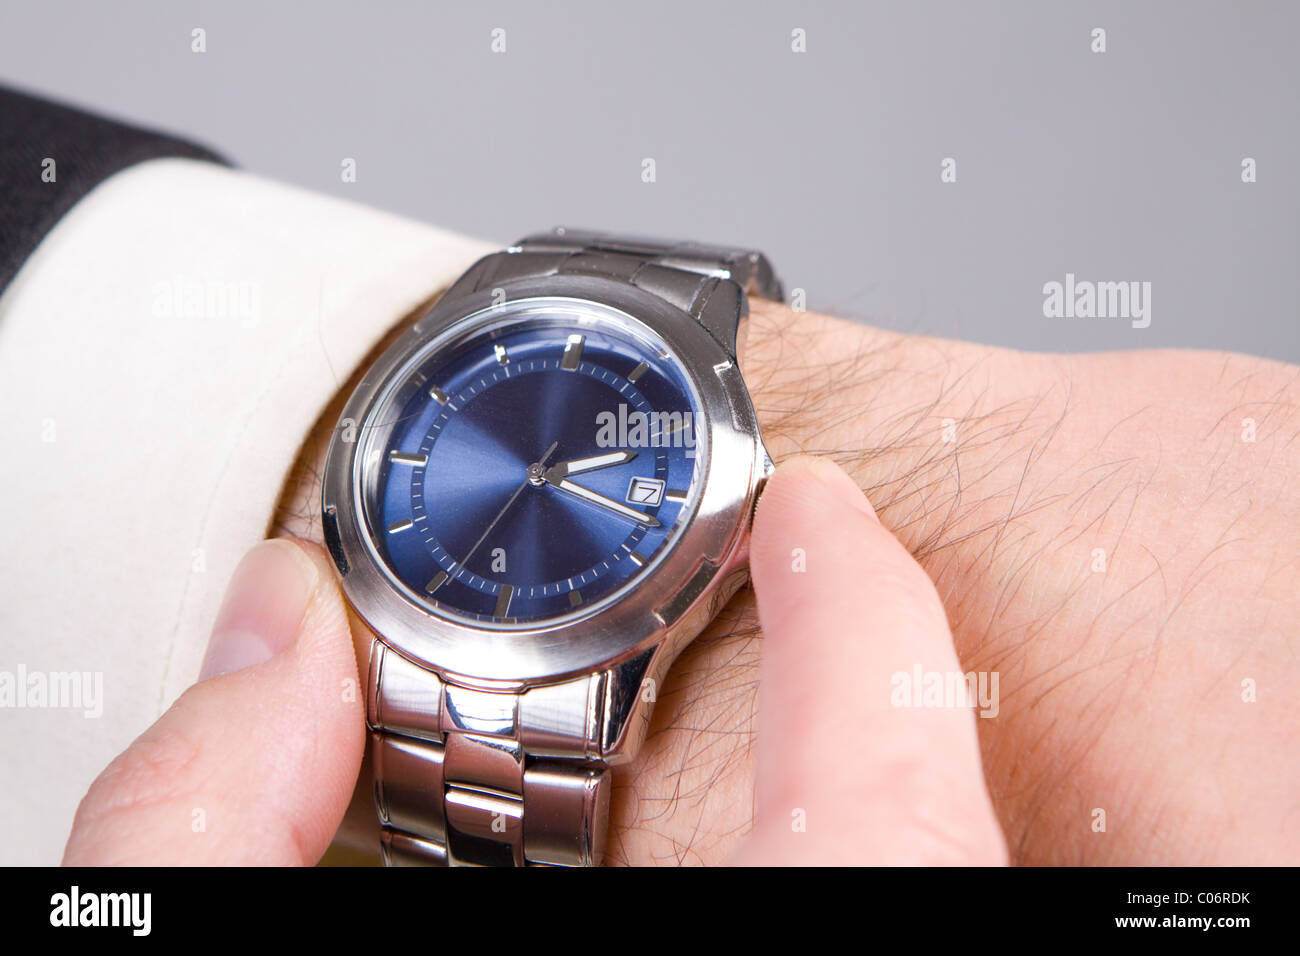 Hand ready to stop chronograph in a modern watch. - Stock Image